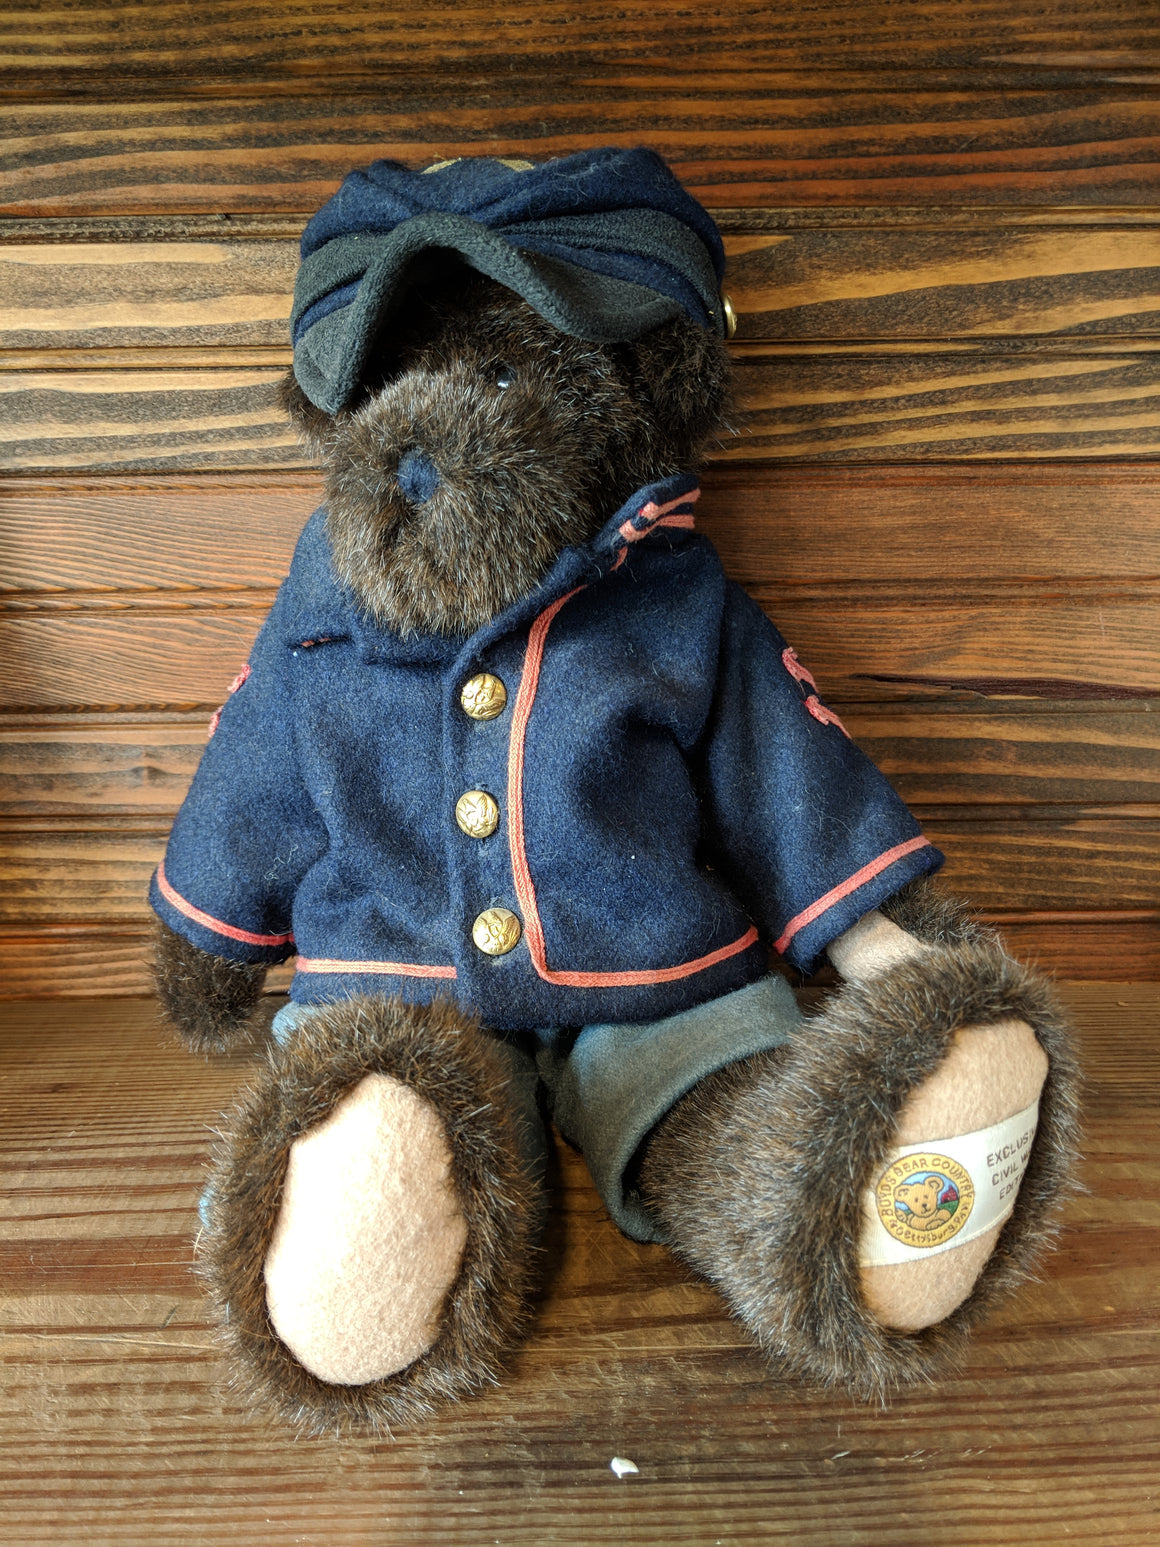 Boyds Bear - Mr. Mason retired Civil War bear